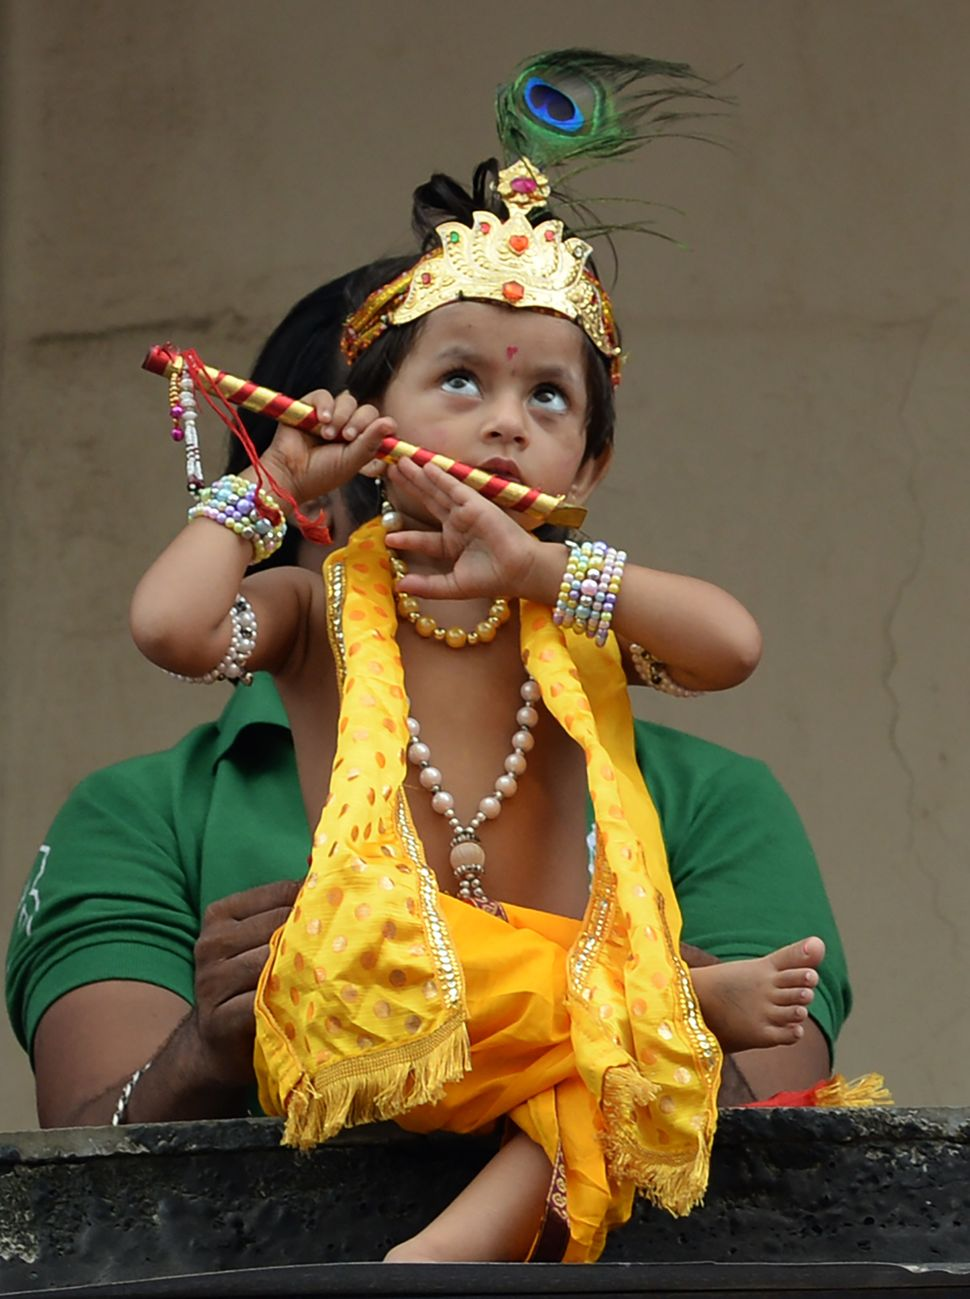 An Indian child dressed as Hindu god Lord Krishna looks on during the celebrations of Janmashtami in Mumbai on August 25, 201